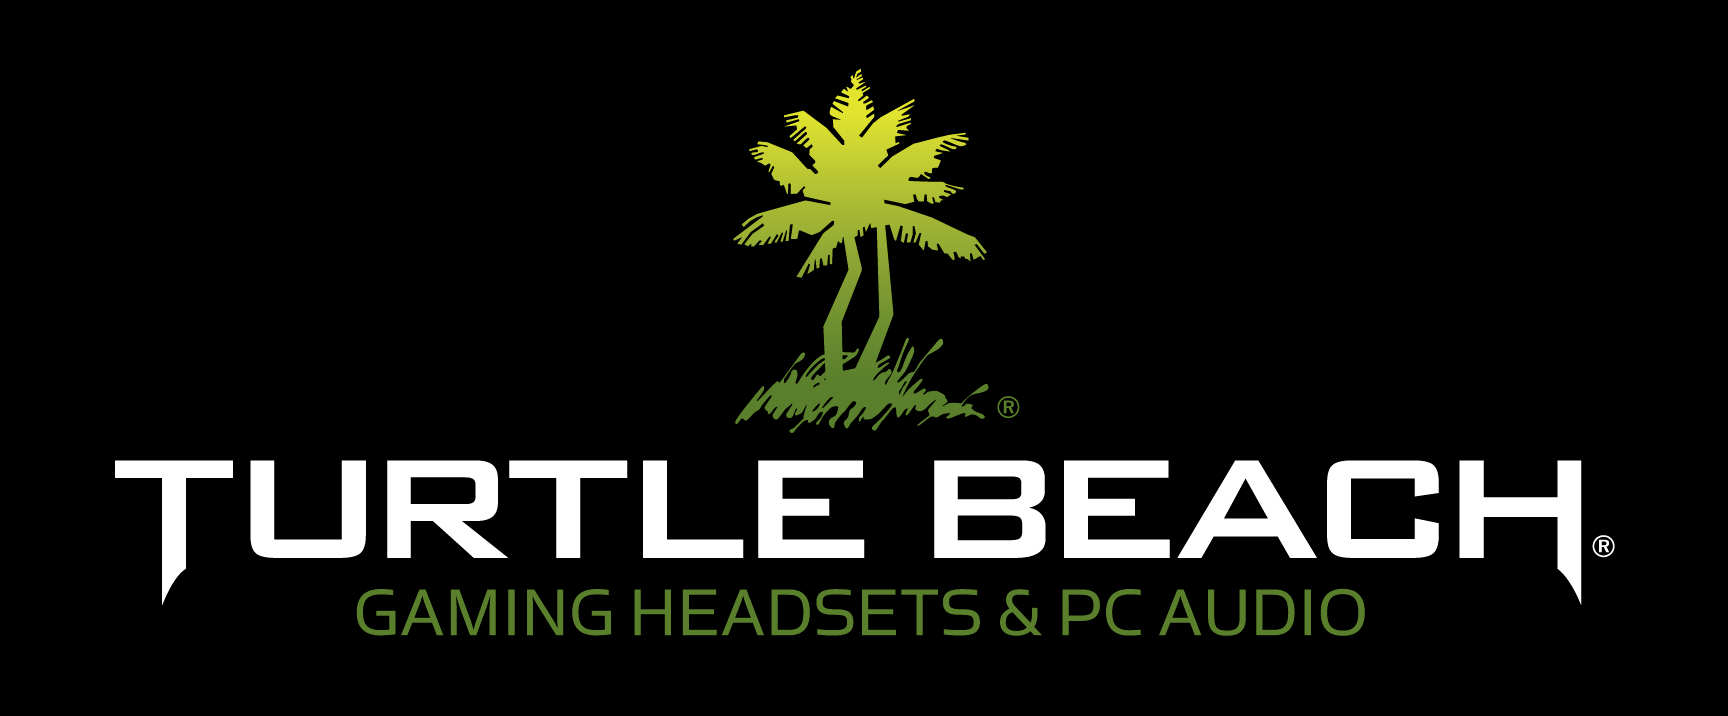 Turtle Beach Unveils Incredible Transparent Directional Speakers tb logo secondary color onblack